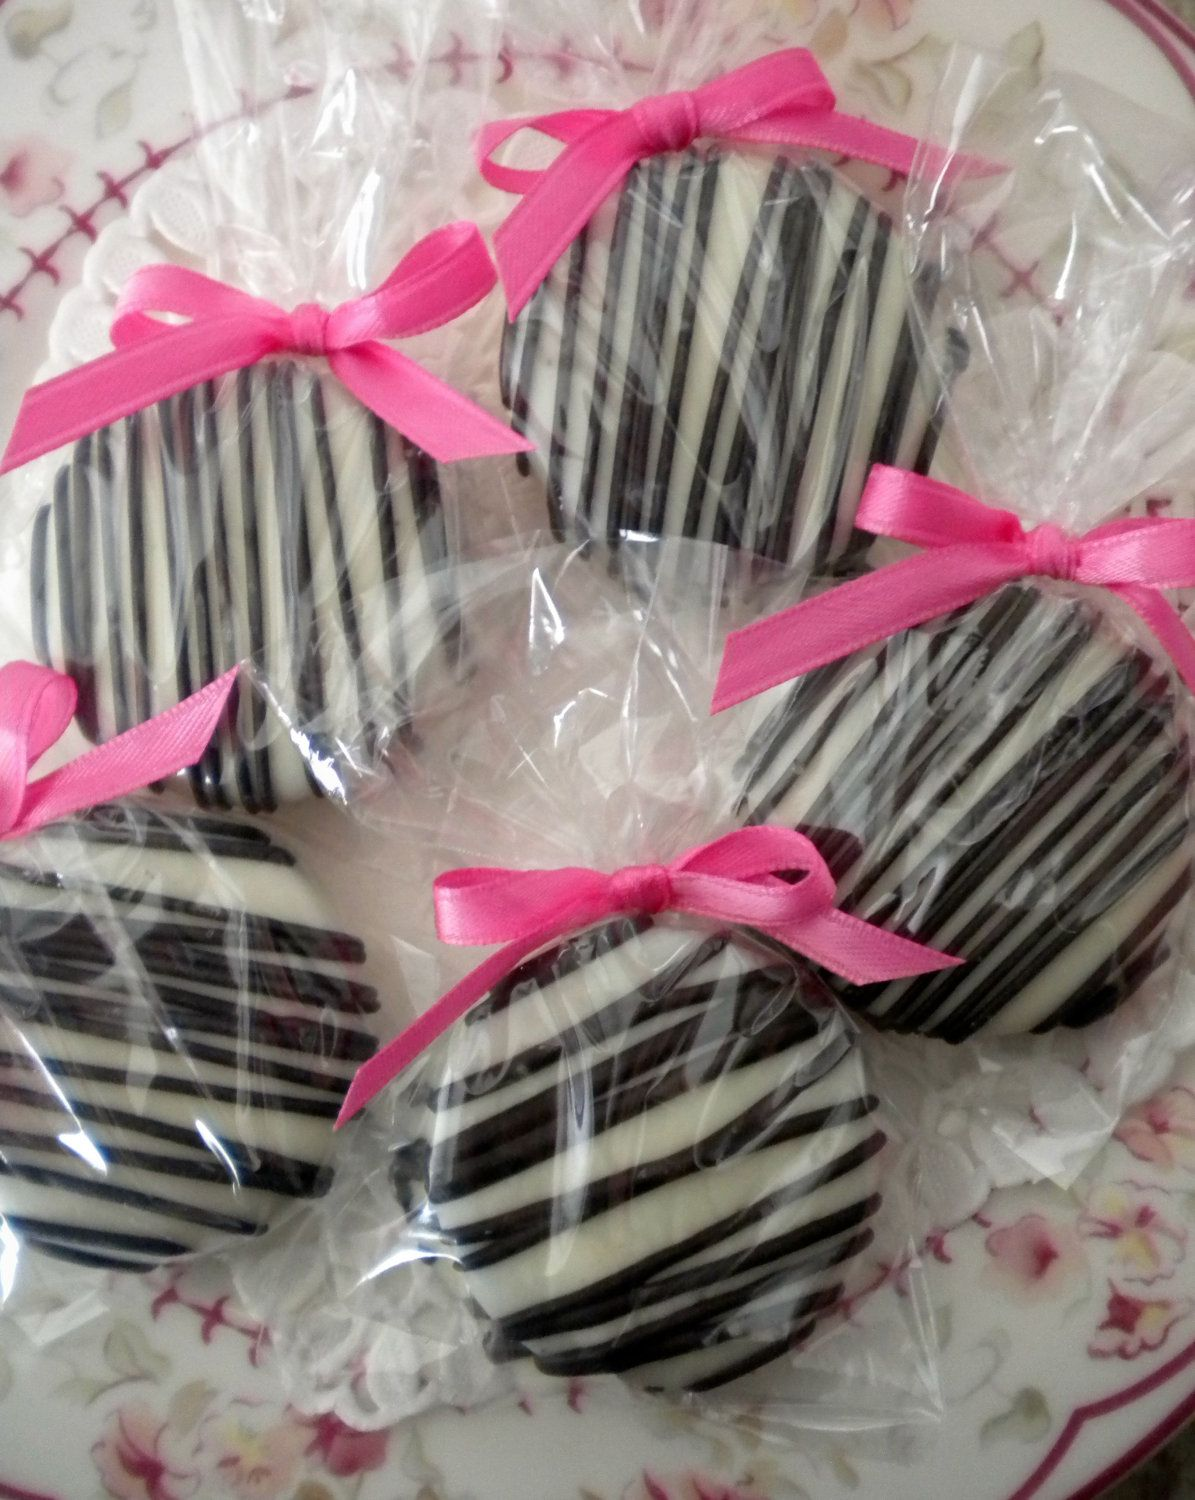 Pink And Black Minnie Mouse Decorations Pink Zebra Minnie Mouse Chocolate Covered Oreo Cookies Pink And